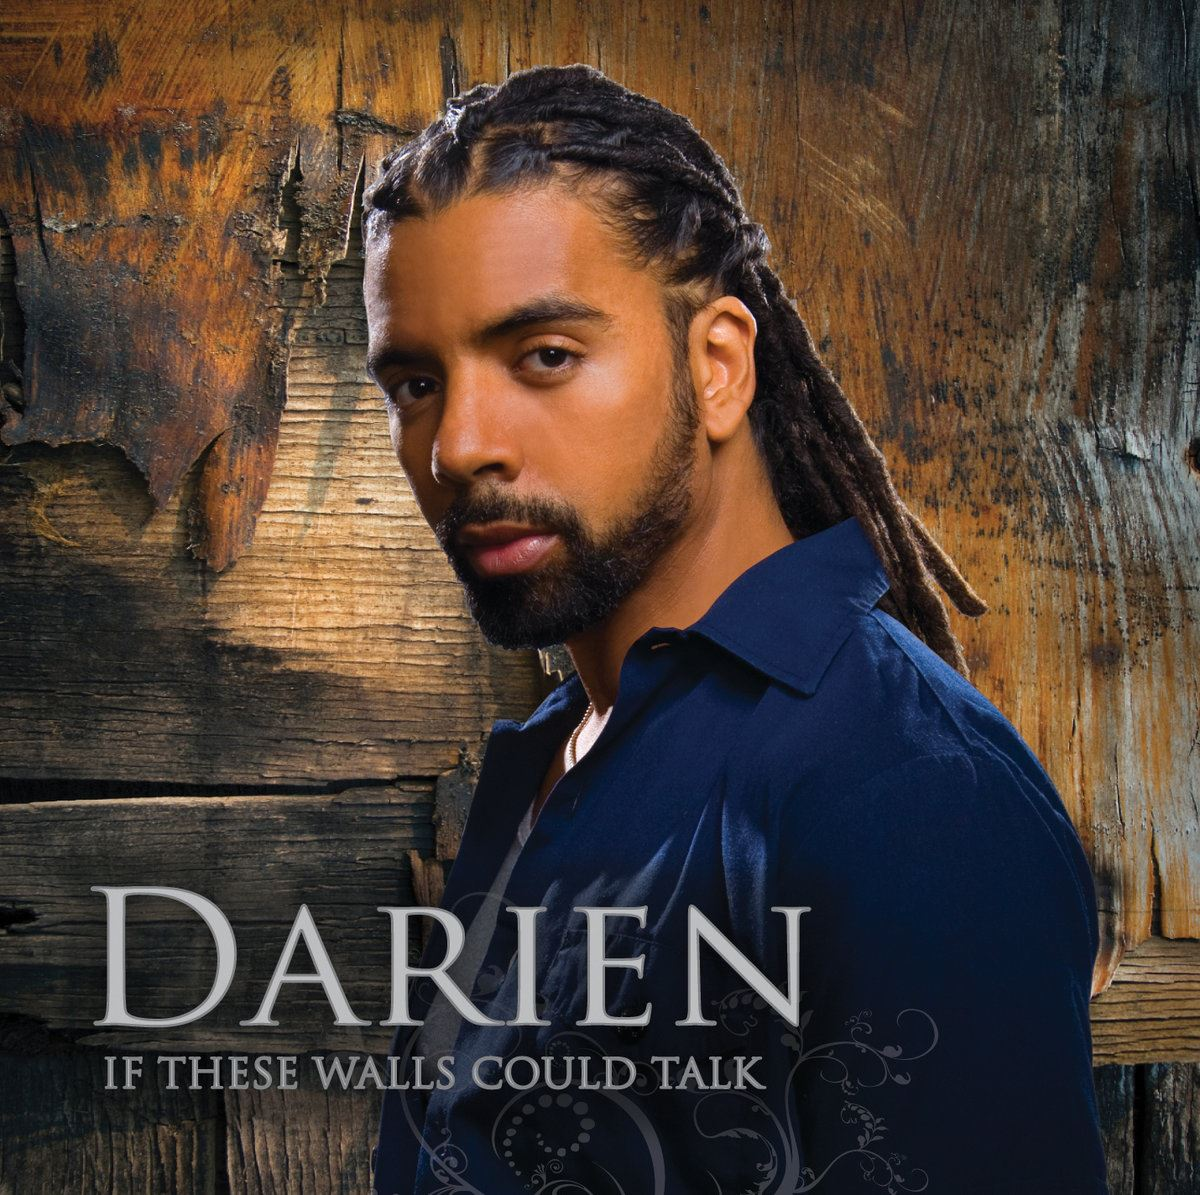 Darien If These Walls Could Talk Cover